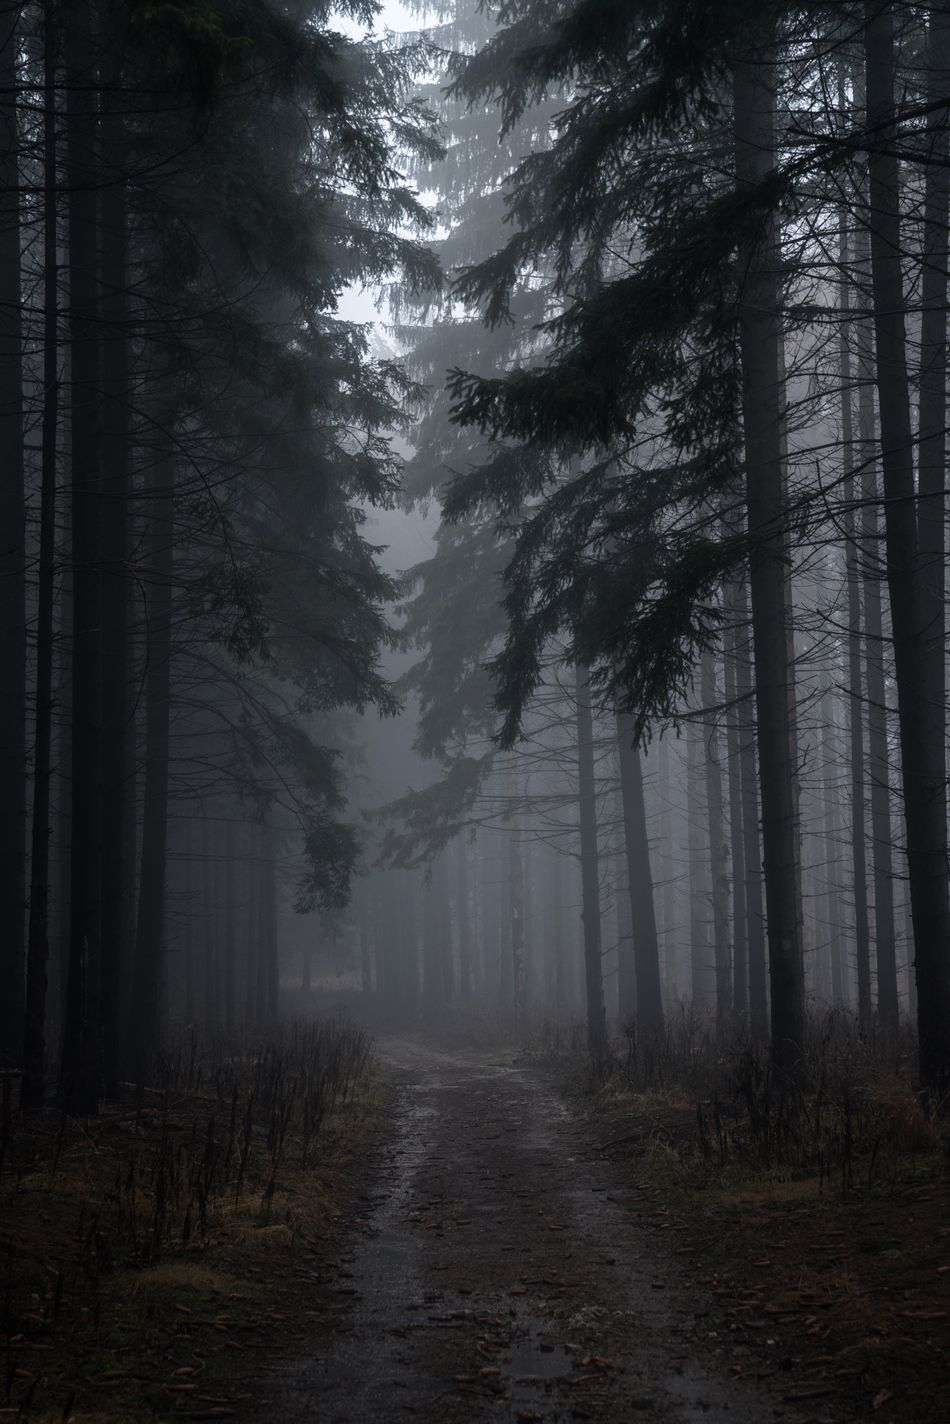 Uncertainty. Tree Forest Fog Nature Landscape Spooky Tree Trunk Scenics WoodLand Outdoors Footpath Beauty In Nature No People Tree Area Day Bükk Bükk Nationalpark Hungary Bükk National Park National Park Hungary Miskolc Nature Travel Travel Destinations Traveling